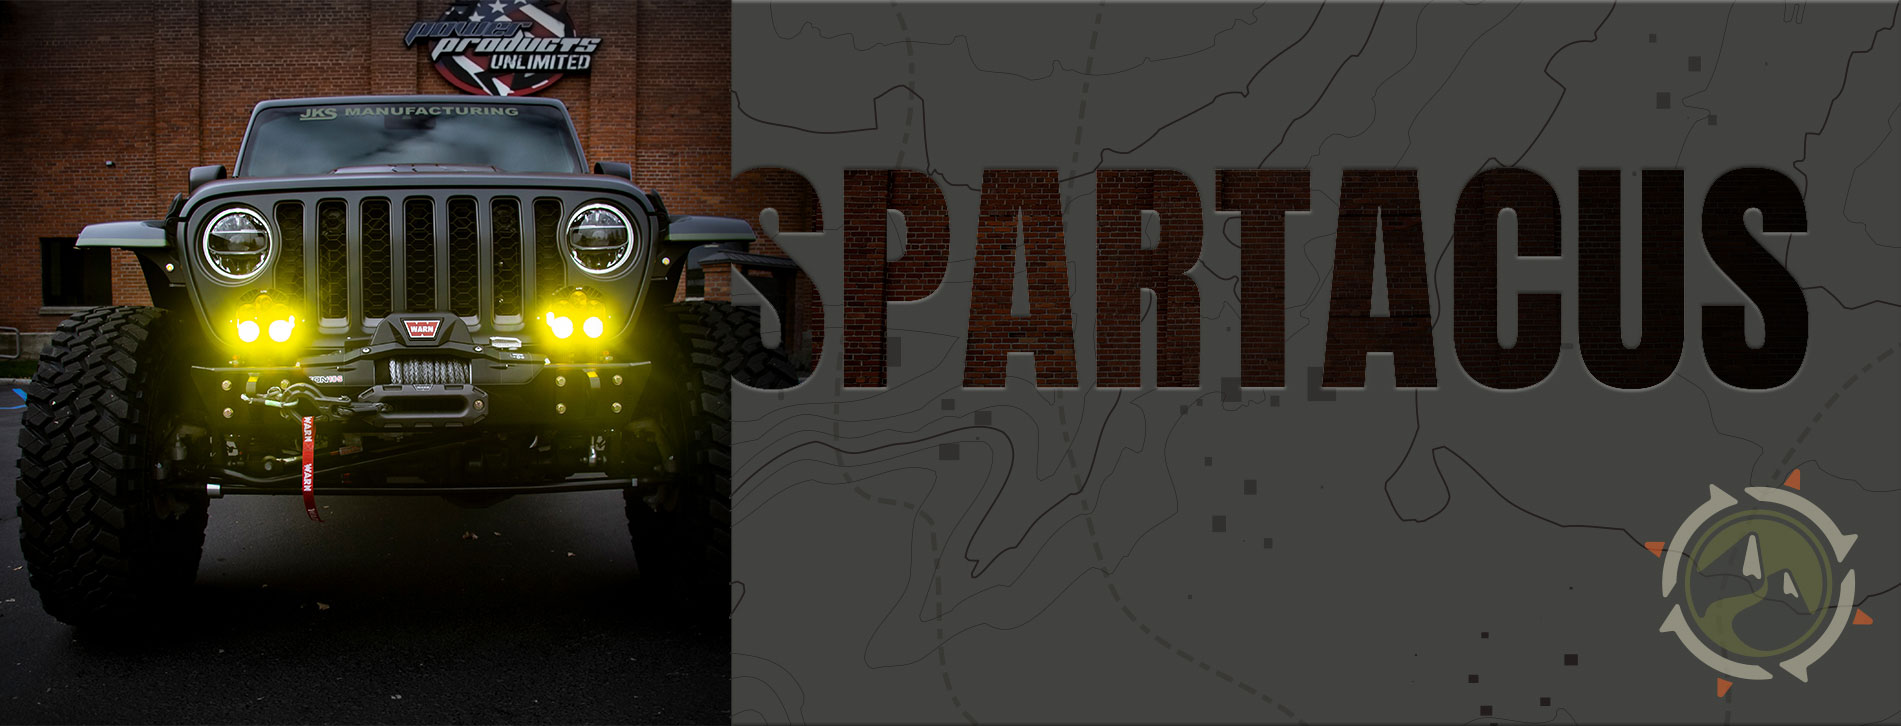 Spartacus - Jeep Gladiator Build with Hellcat Engine